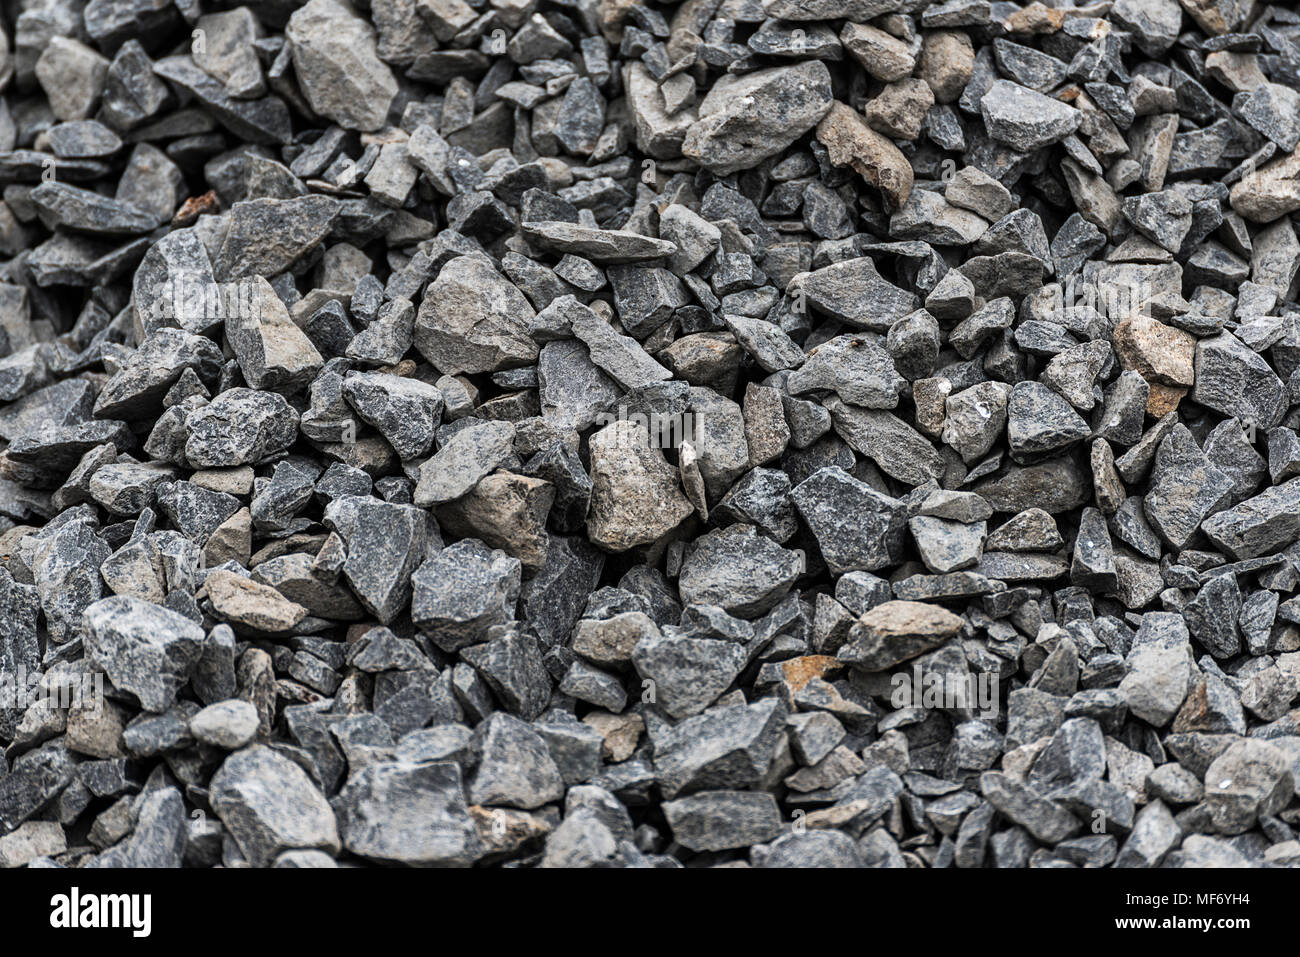 Stone, gravel at construction site in Addis Ababa, Ethiopia - Stock Image